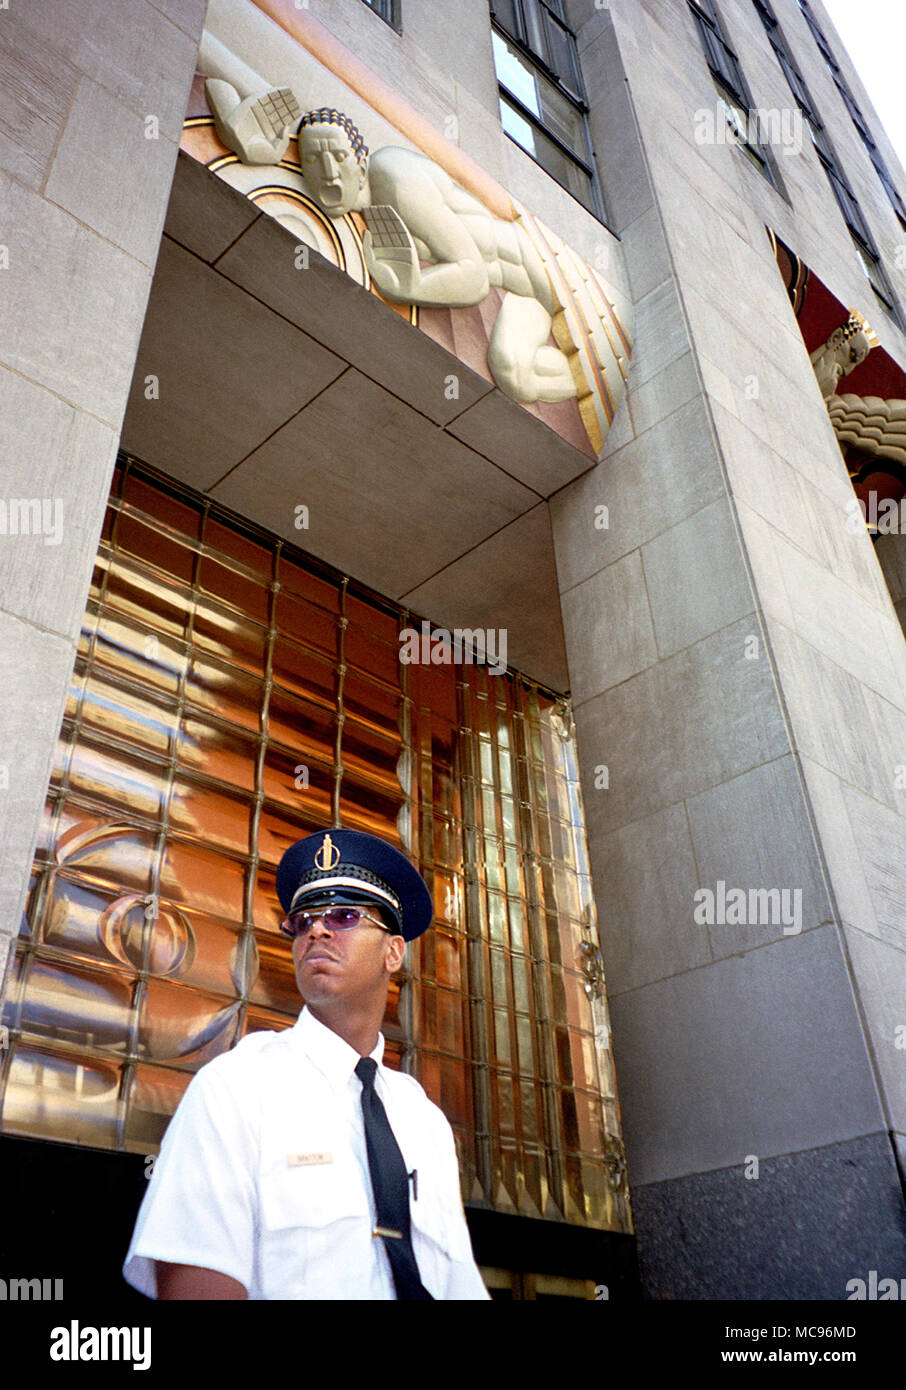 A tough looking security guard stands outside The Rockefeller Centre NYC the day after the terrorist attack on The World Trade Center New York City on 9/11   photo DON TONGE Photographer - Stock Image